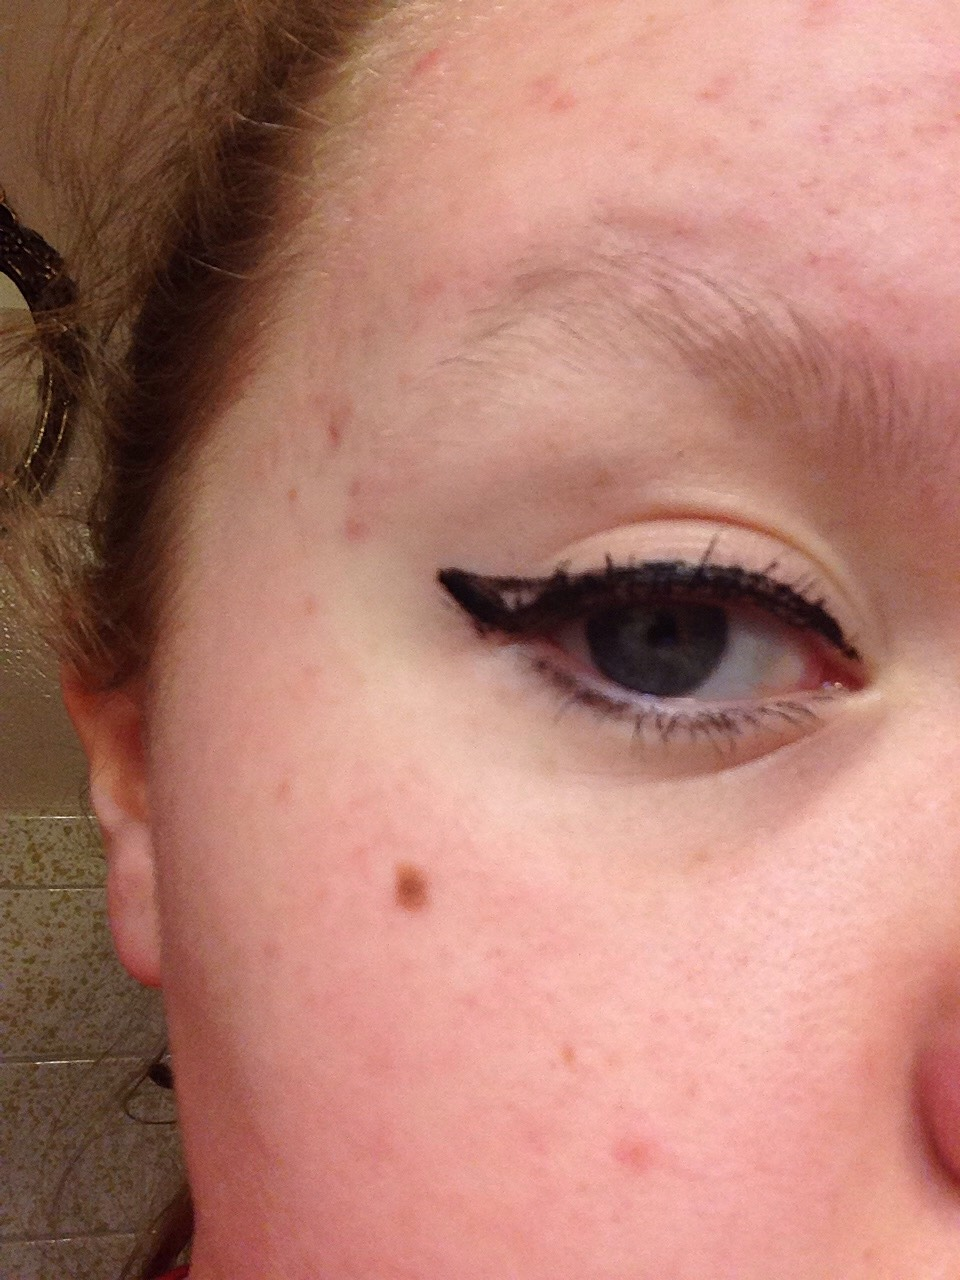 Make s small triangle from the top of the line to the end of the eyelid